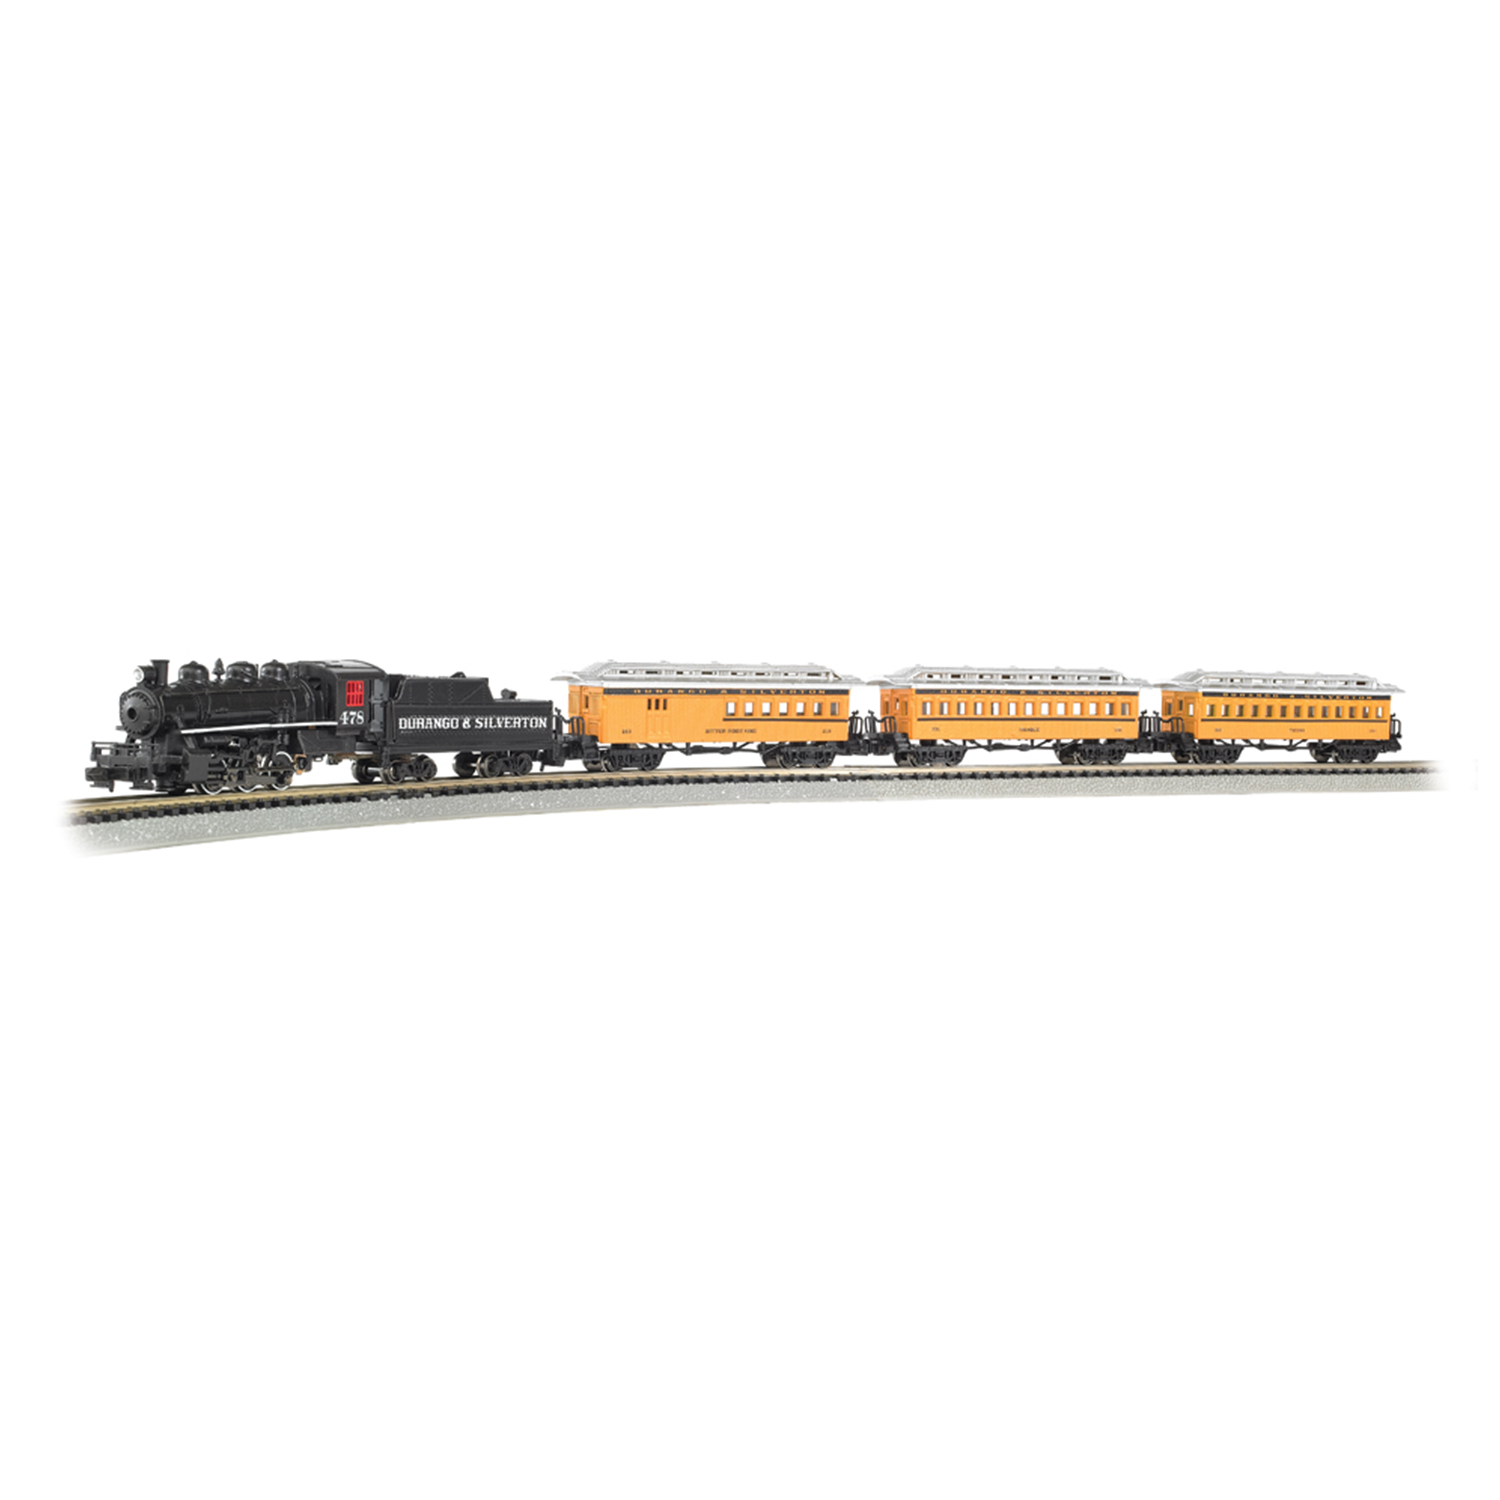 Bachmann Trains Durango and Silverton, N Scale Ready-To-Run Electric Train Set by Bachmann Trains